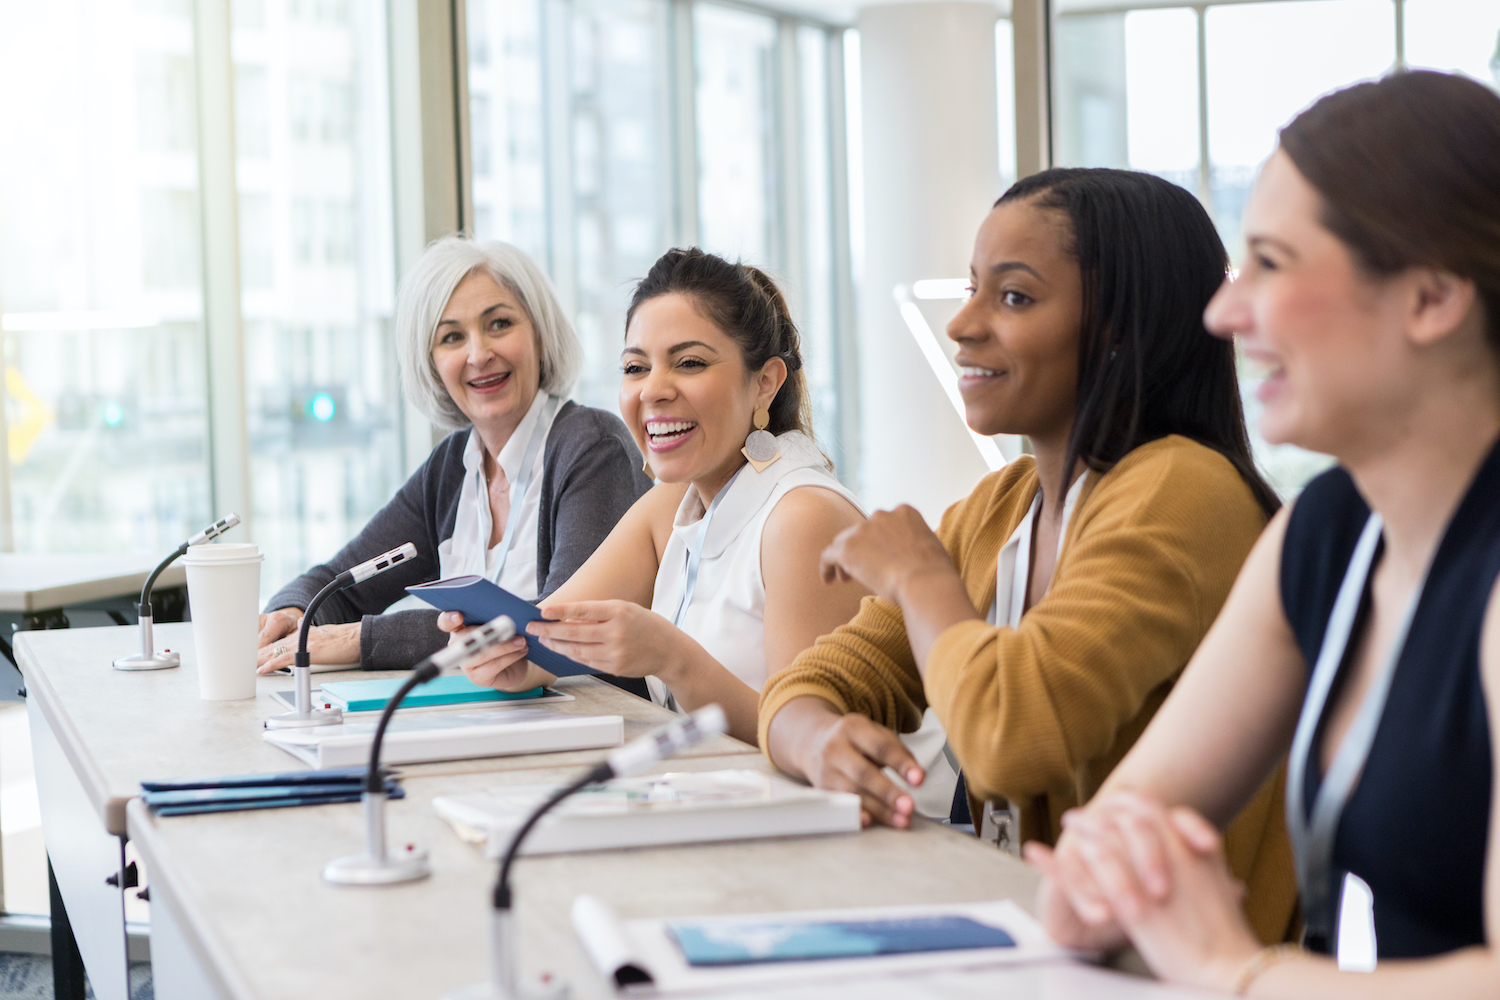 The best advice often comes from those who have been there. That was the impetus for the FT's recent Women at the Top USA panel, The stages of your career.